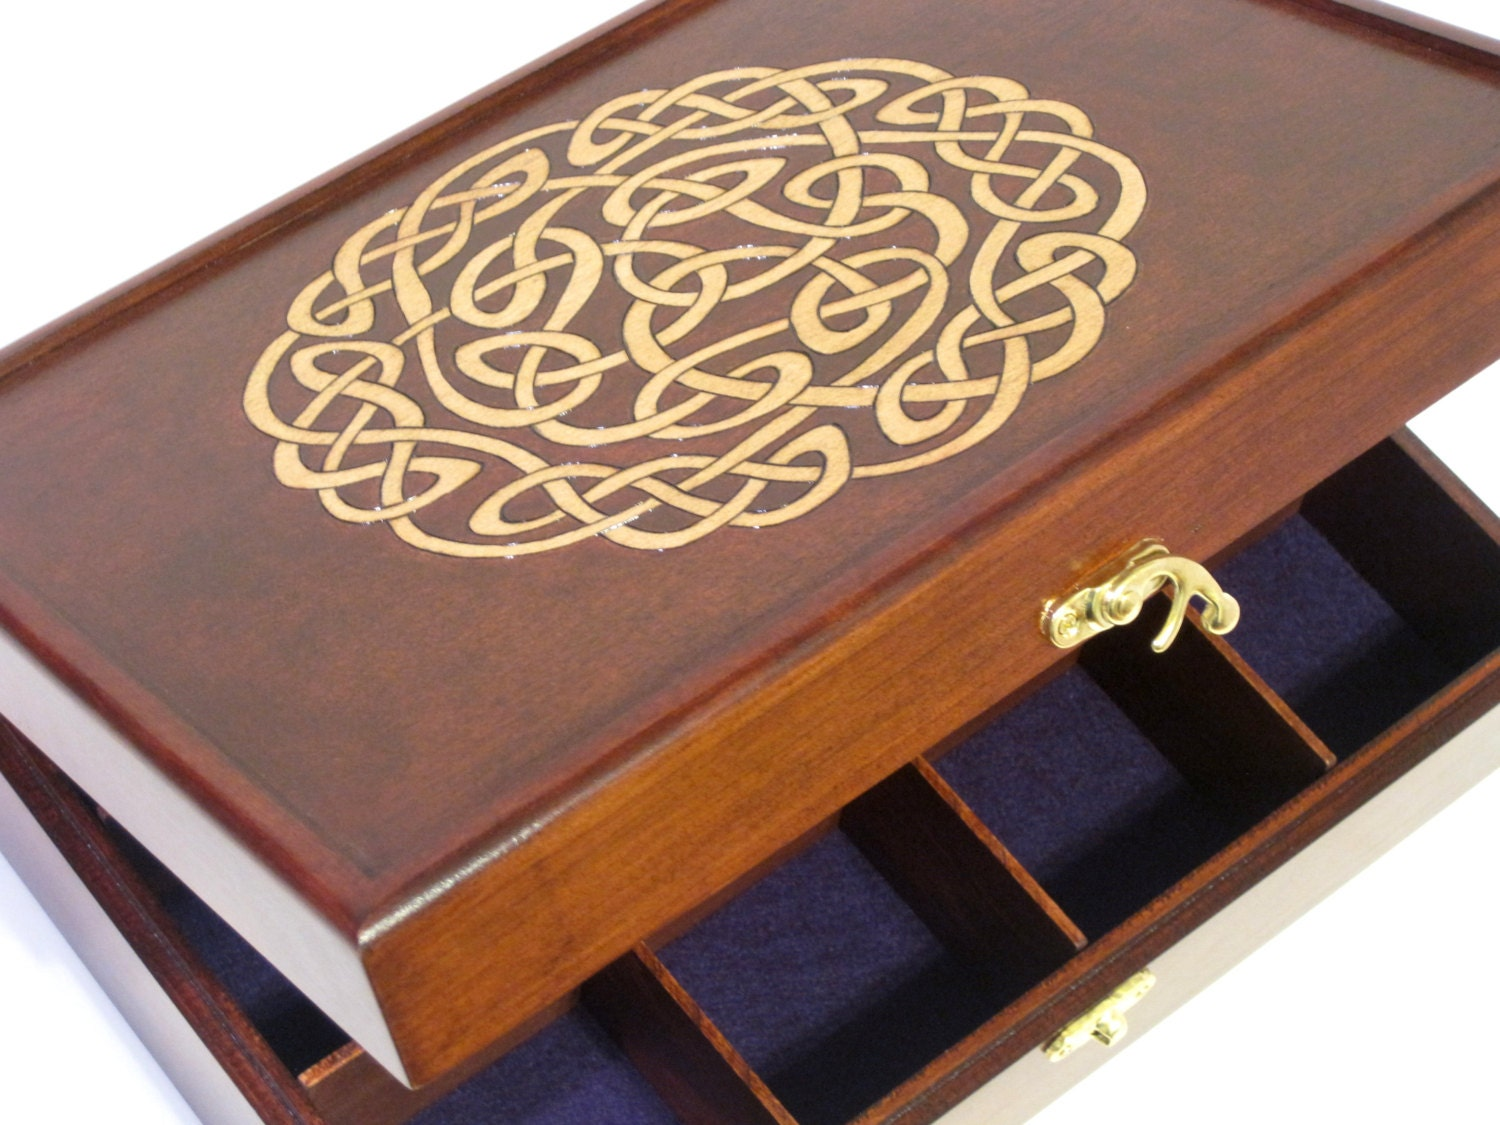 Celtic Knot Woodburned Tea Chest or Watch Box 12 Compartments